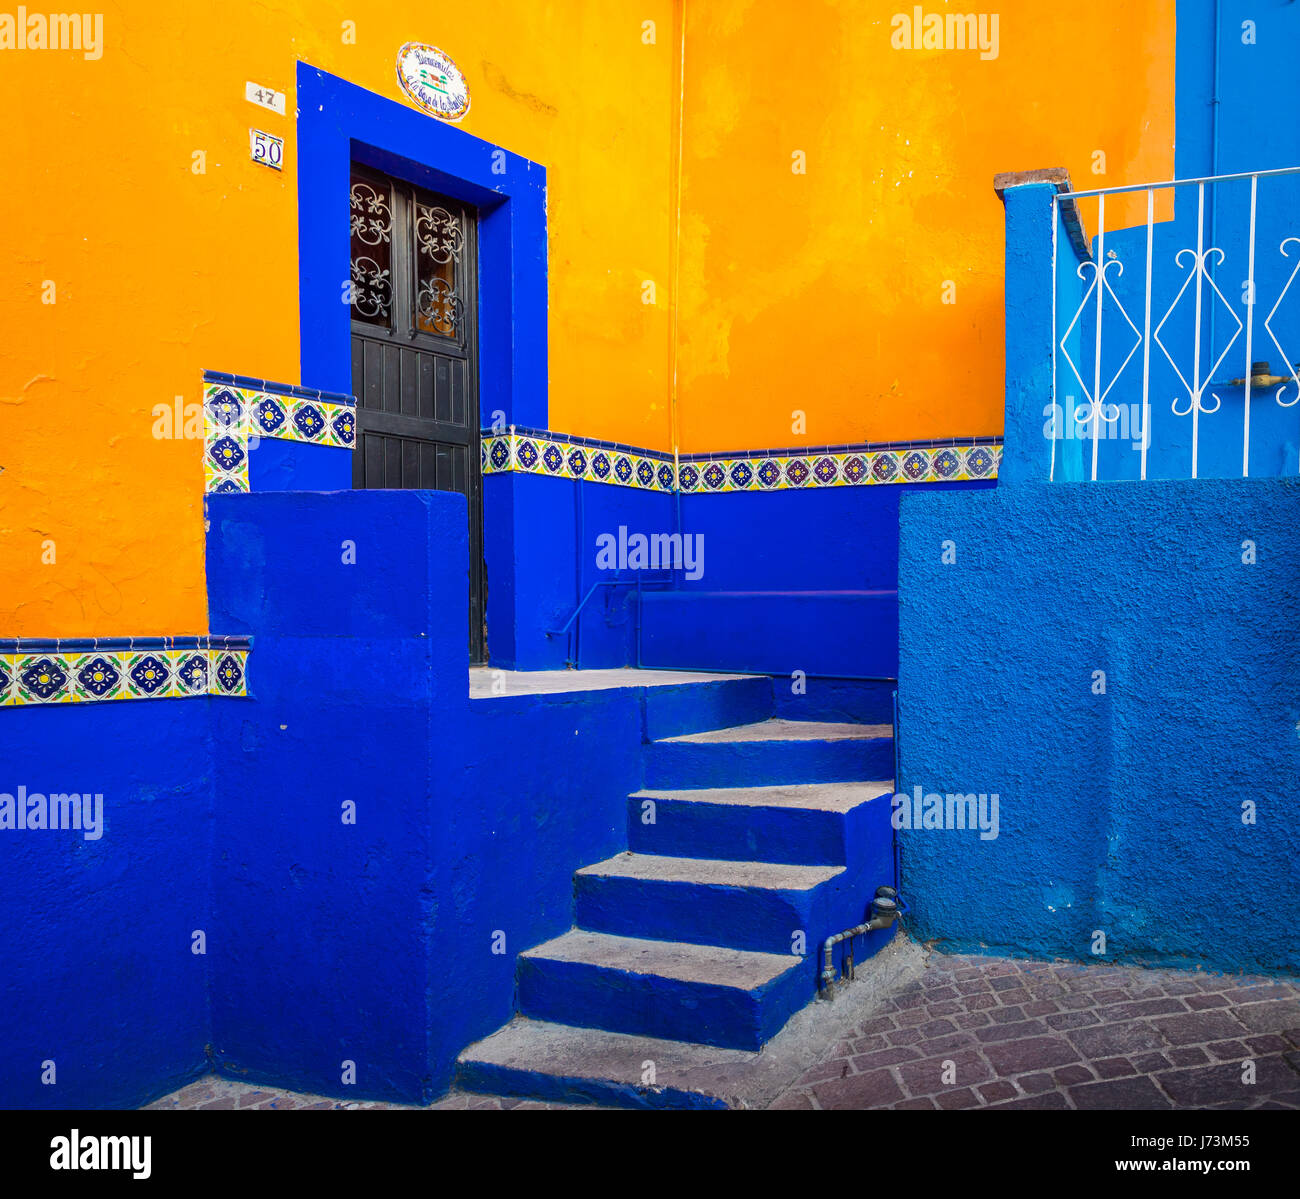 ------ Guanajuato is a city and municipality in central Mexico and the capital of the state of the same name. It - Stock Image